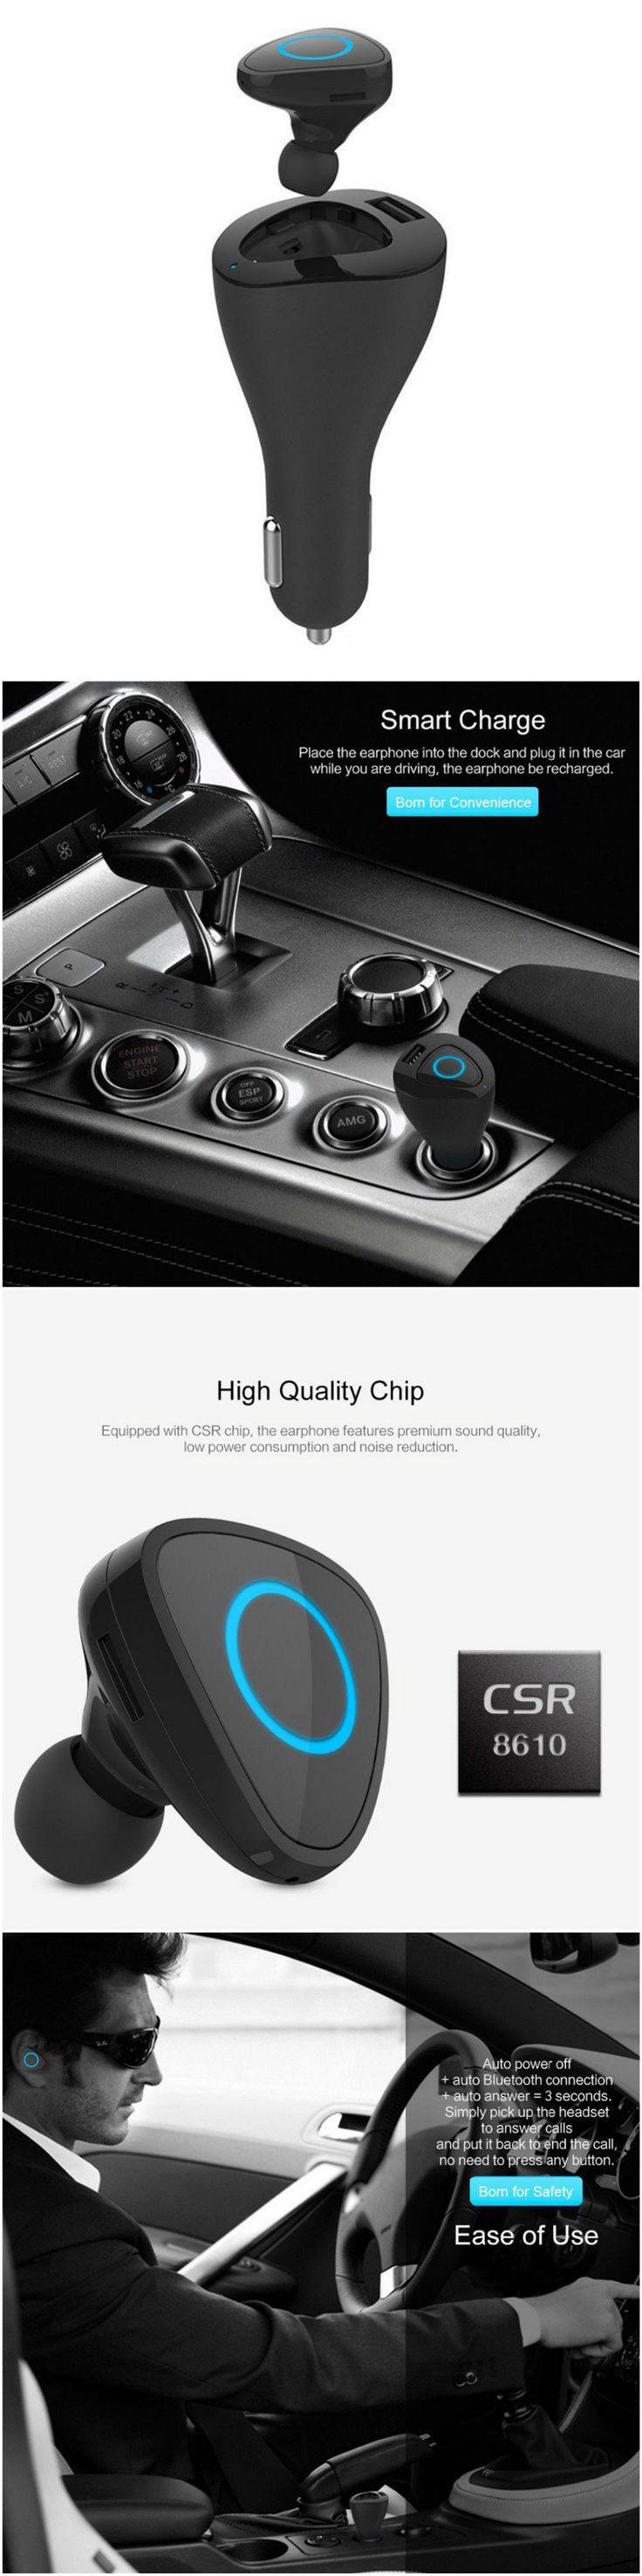 New Bluetooth wireless driving headset earphones with convenient controls #Technology